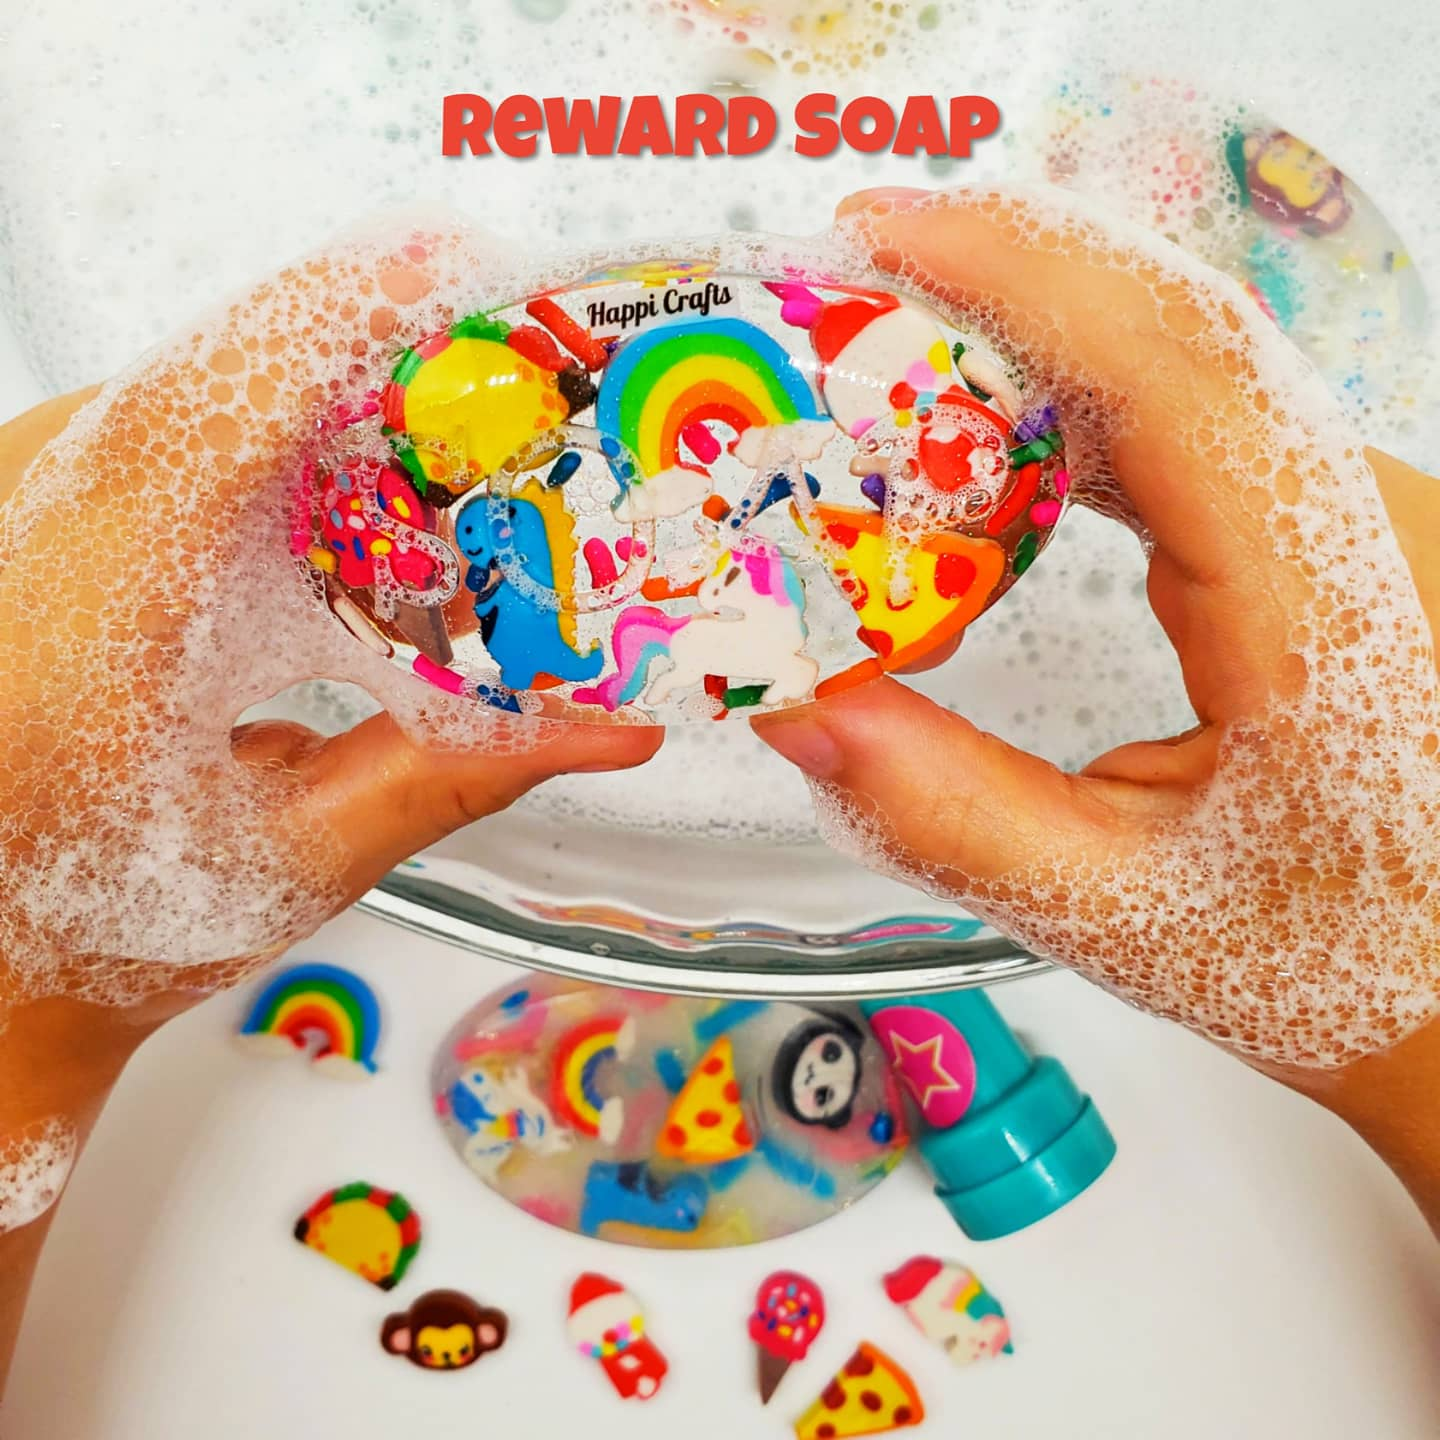 Reward Soap